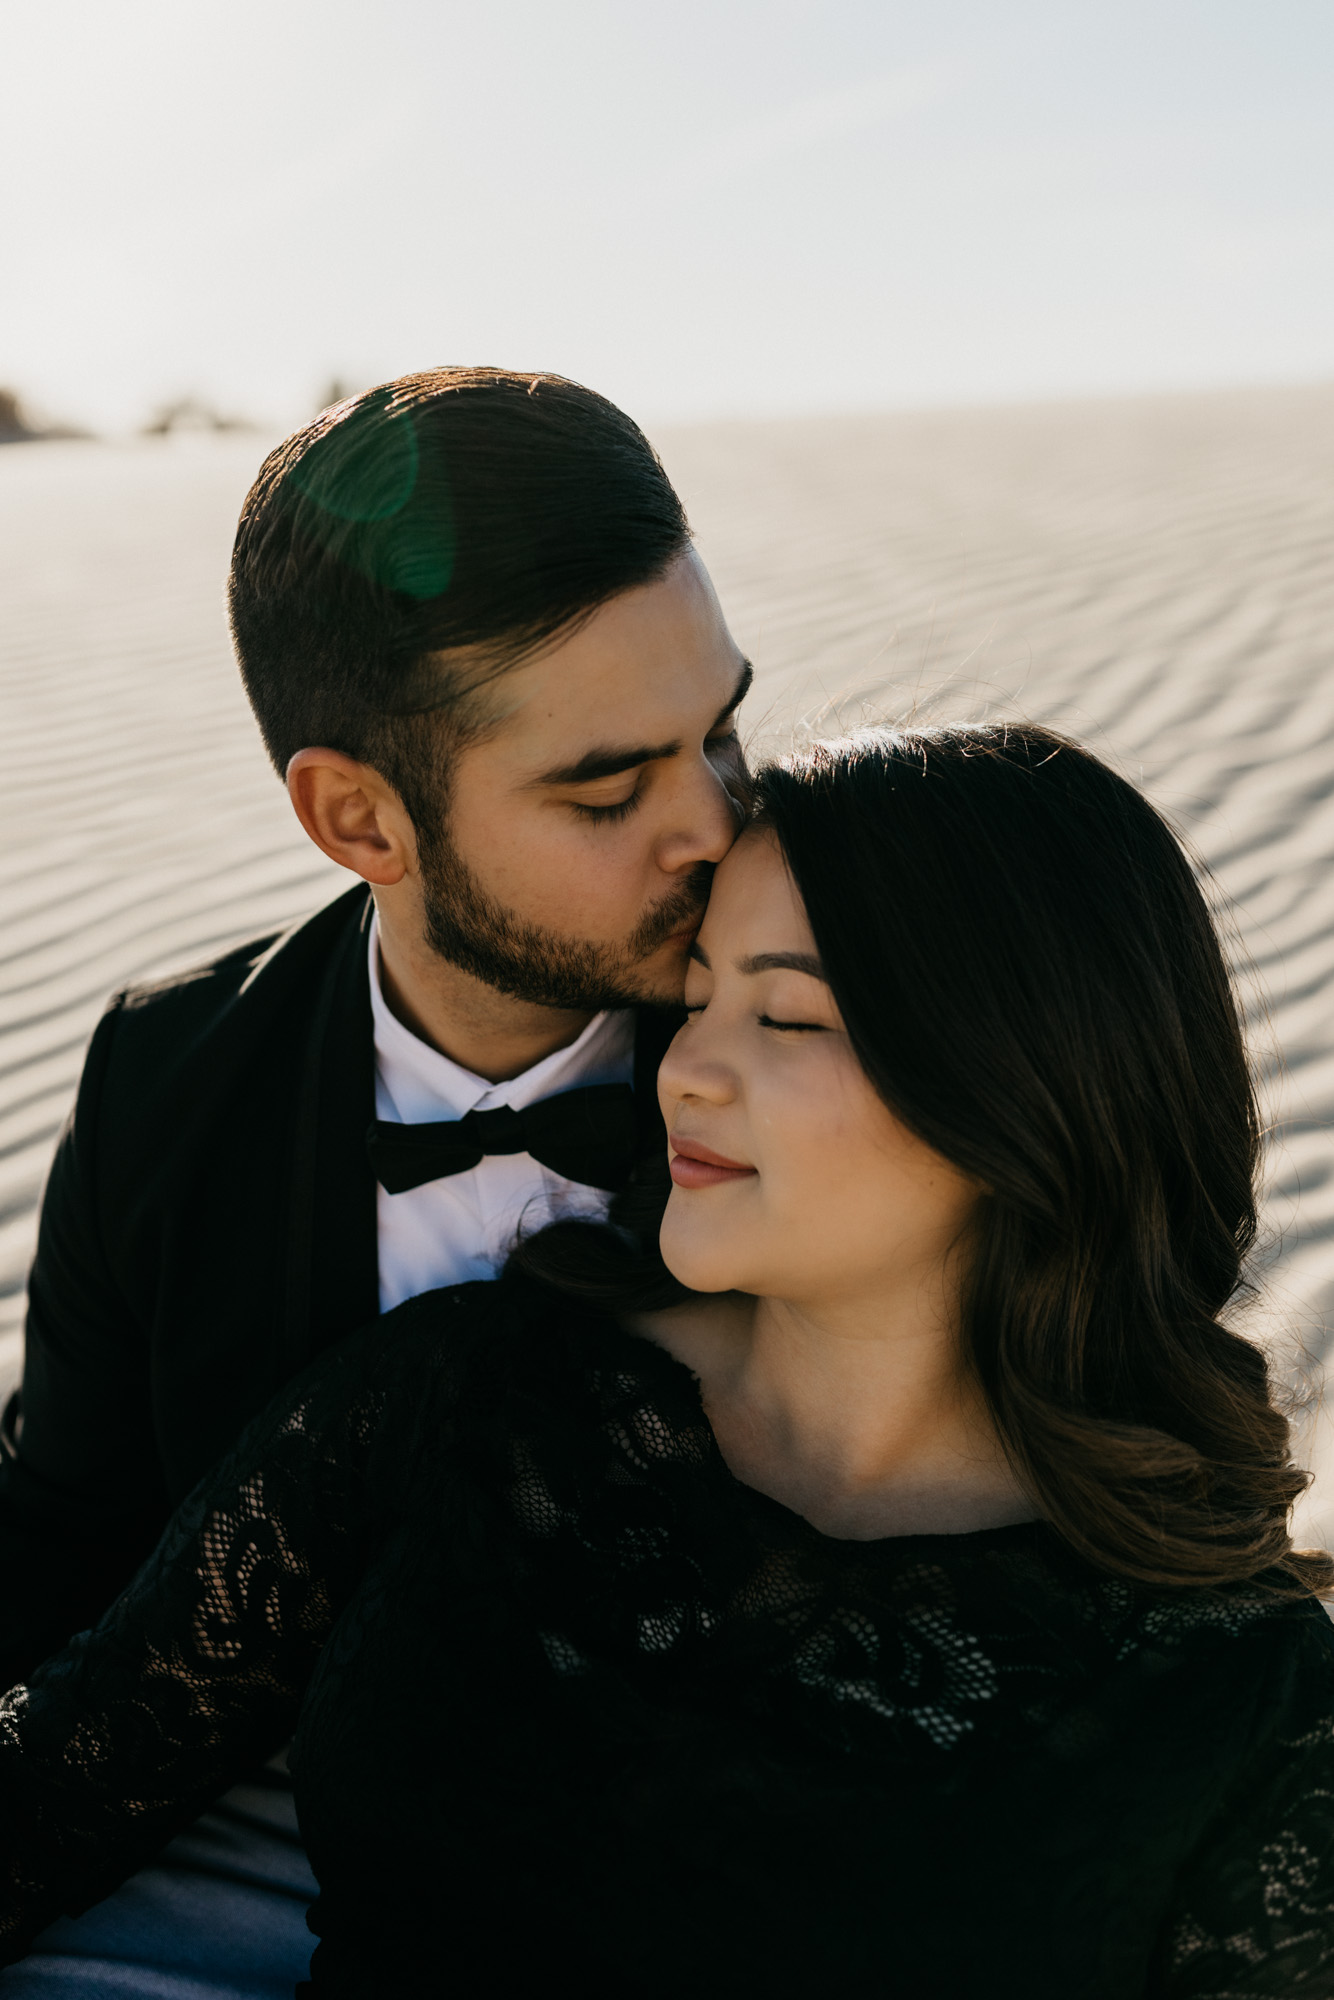 Boy kissing girl on the forehead during a cozy and romantic desert engagement session